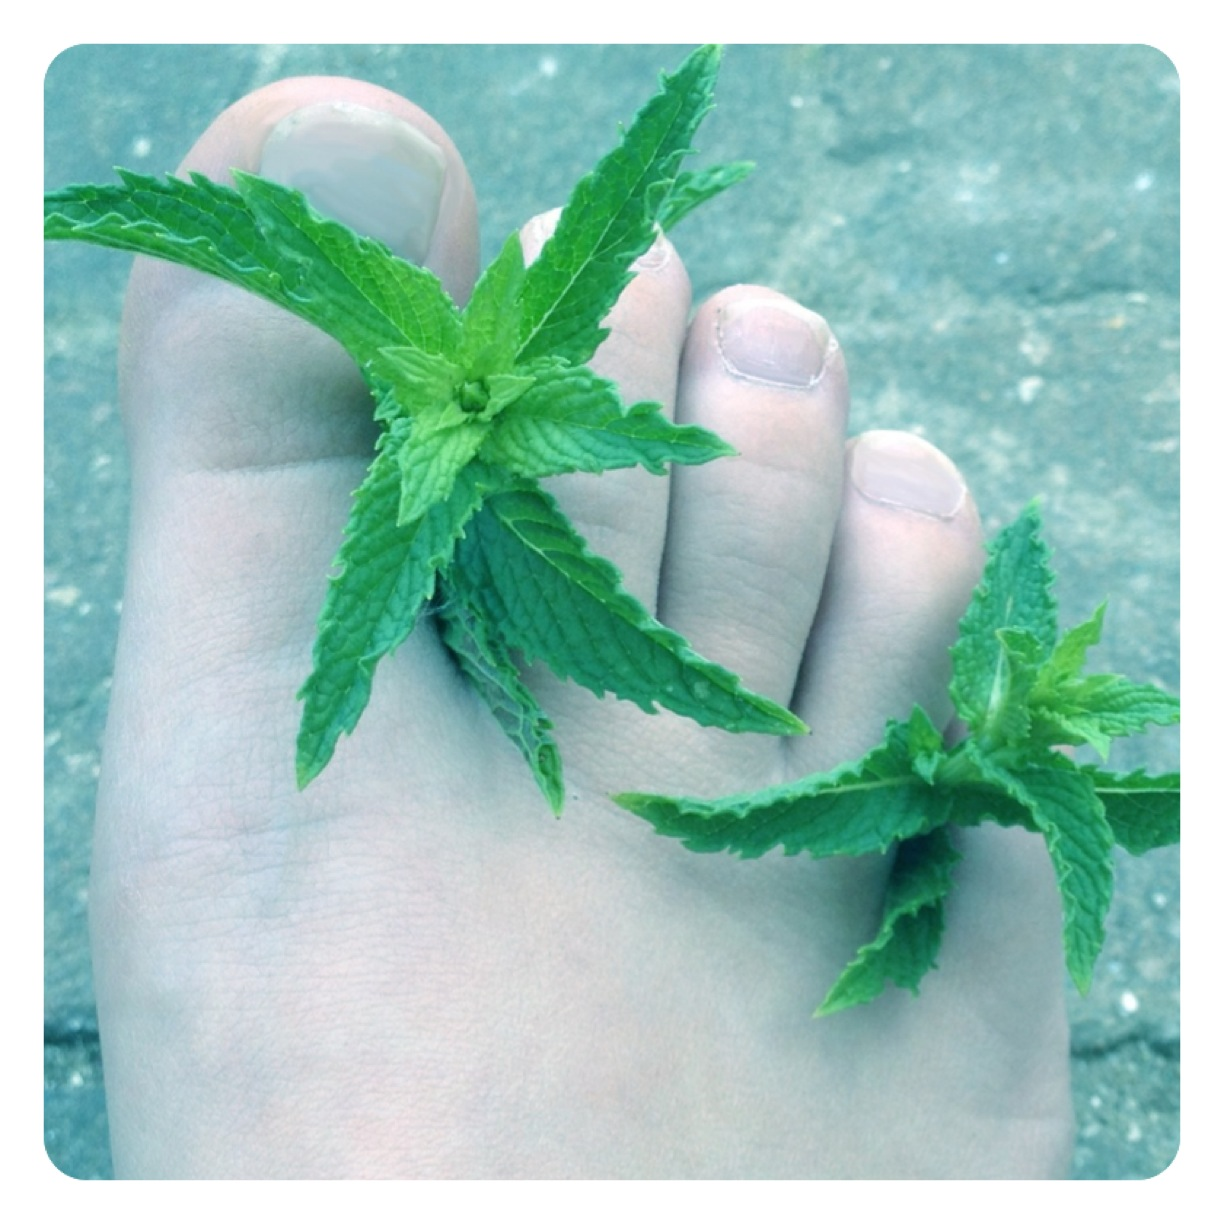 DIY Minty Foot Scrub